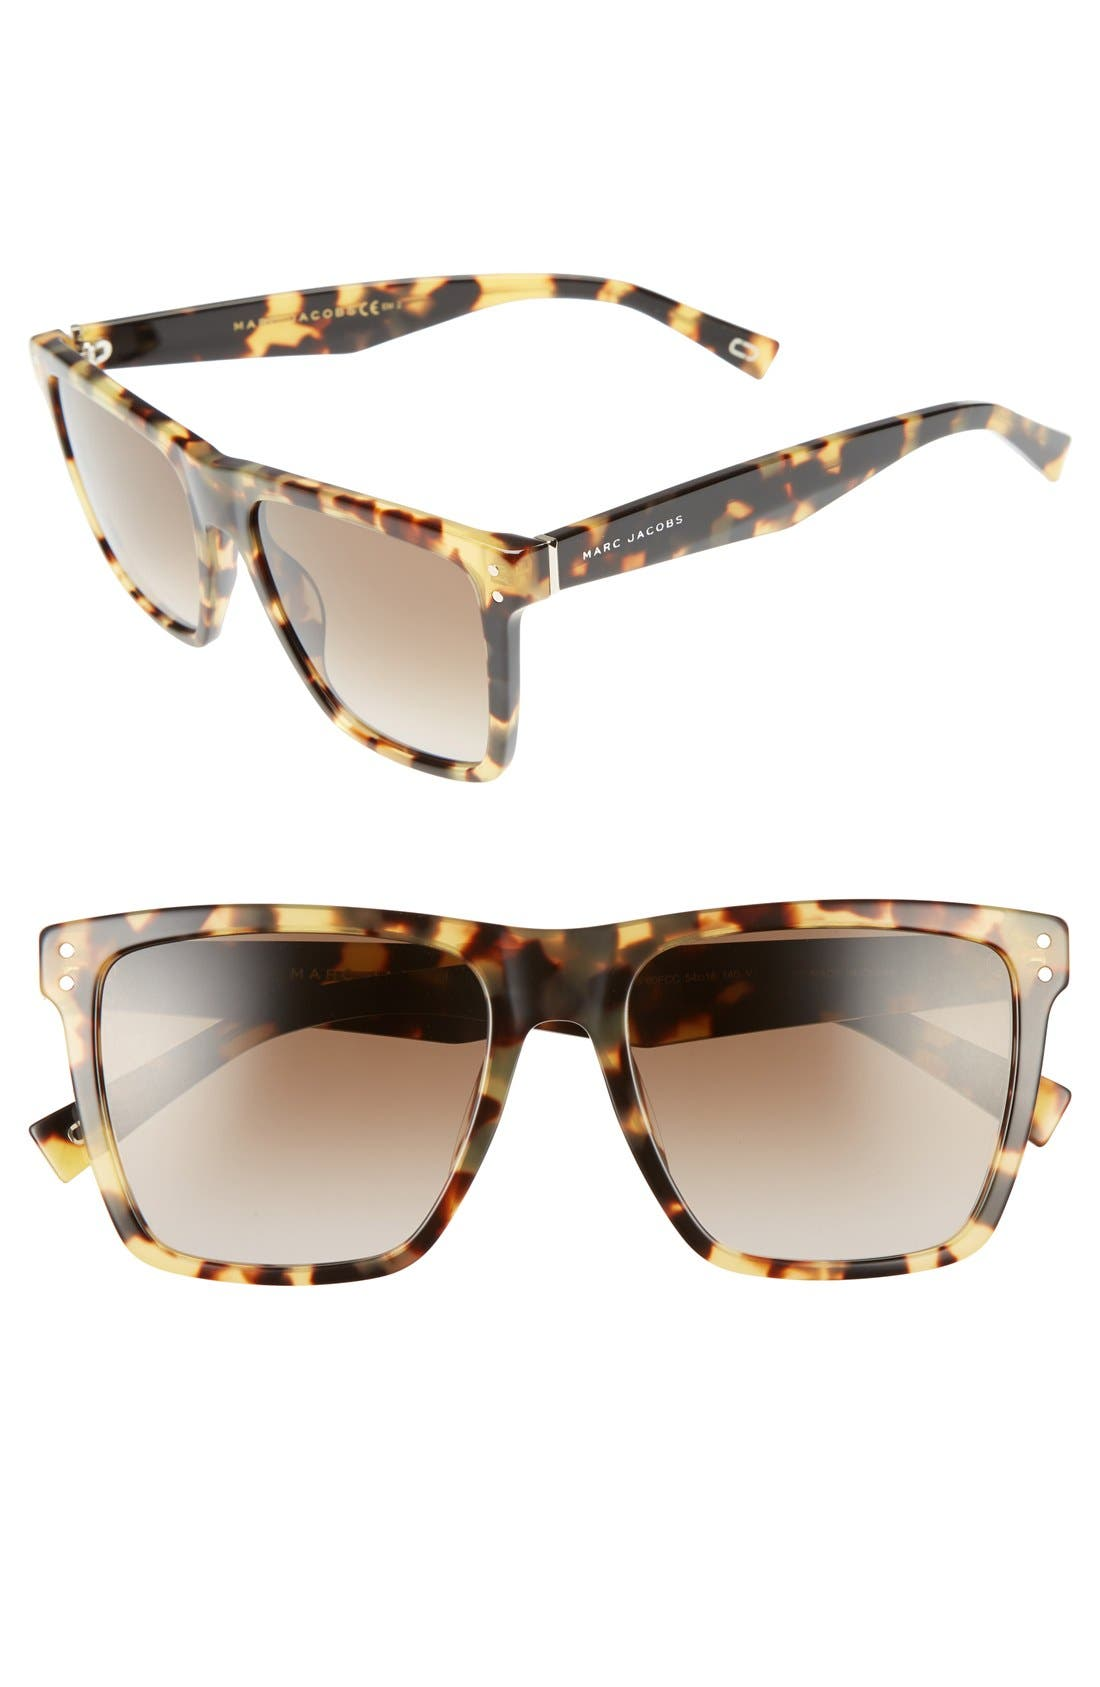 Main Image - MARC JACOBS 54mm Flat Top Gradient Square Frame Sunglasses